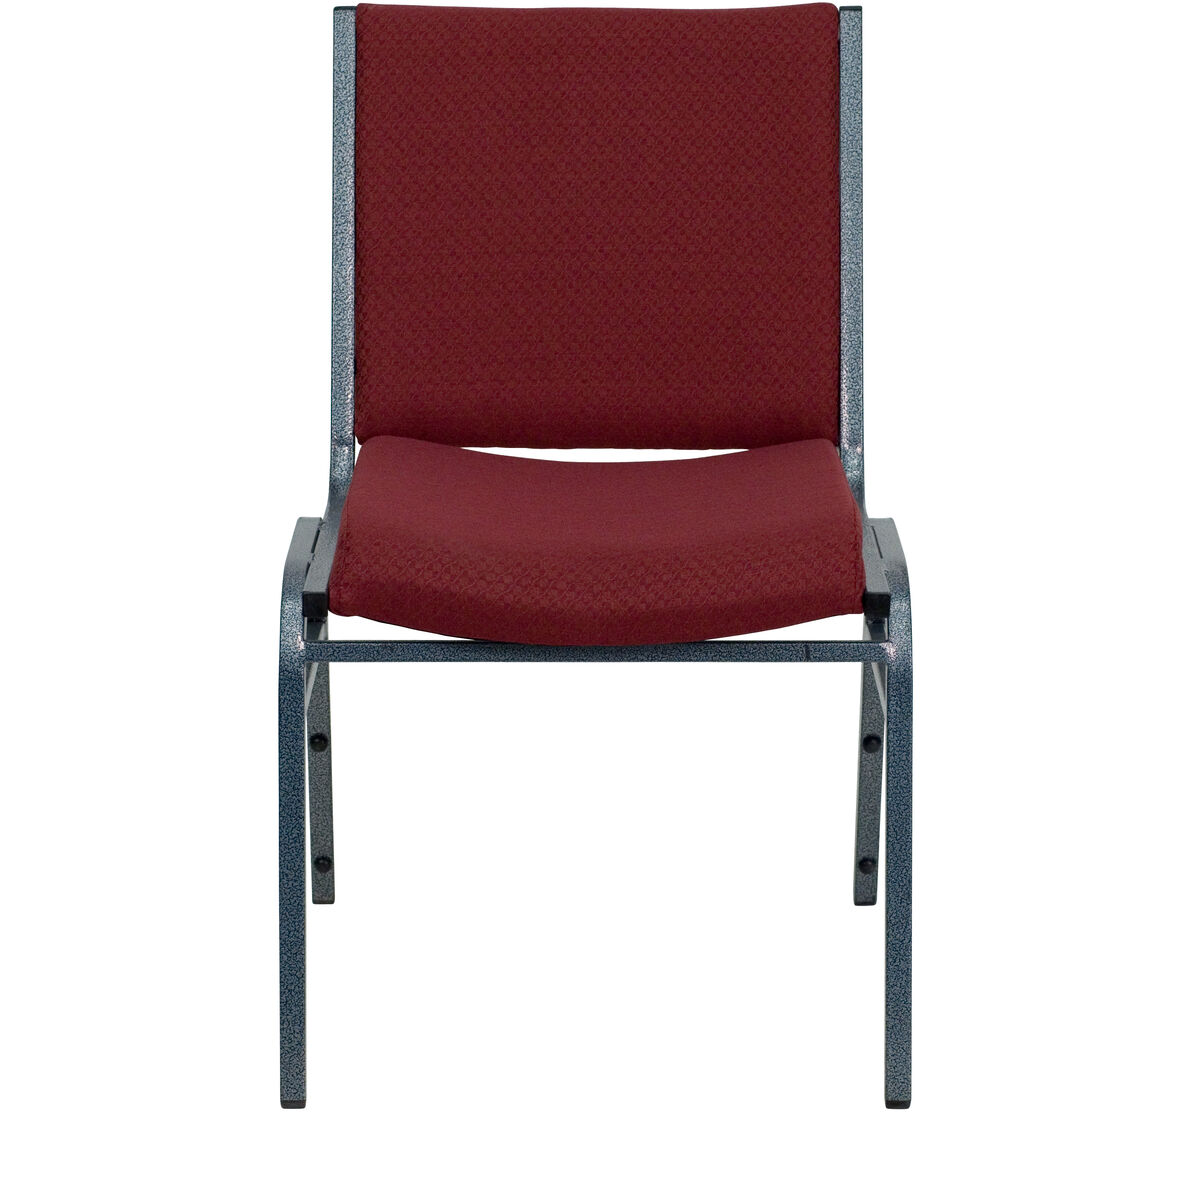 hercules series heavy duty burgundy patterned fabric stack chair inset 3. Black Bedroom Furniture Sets. Home Design Ideas